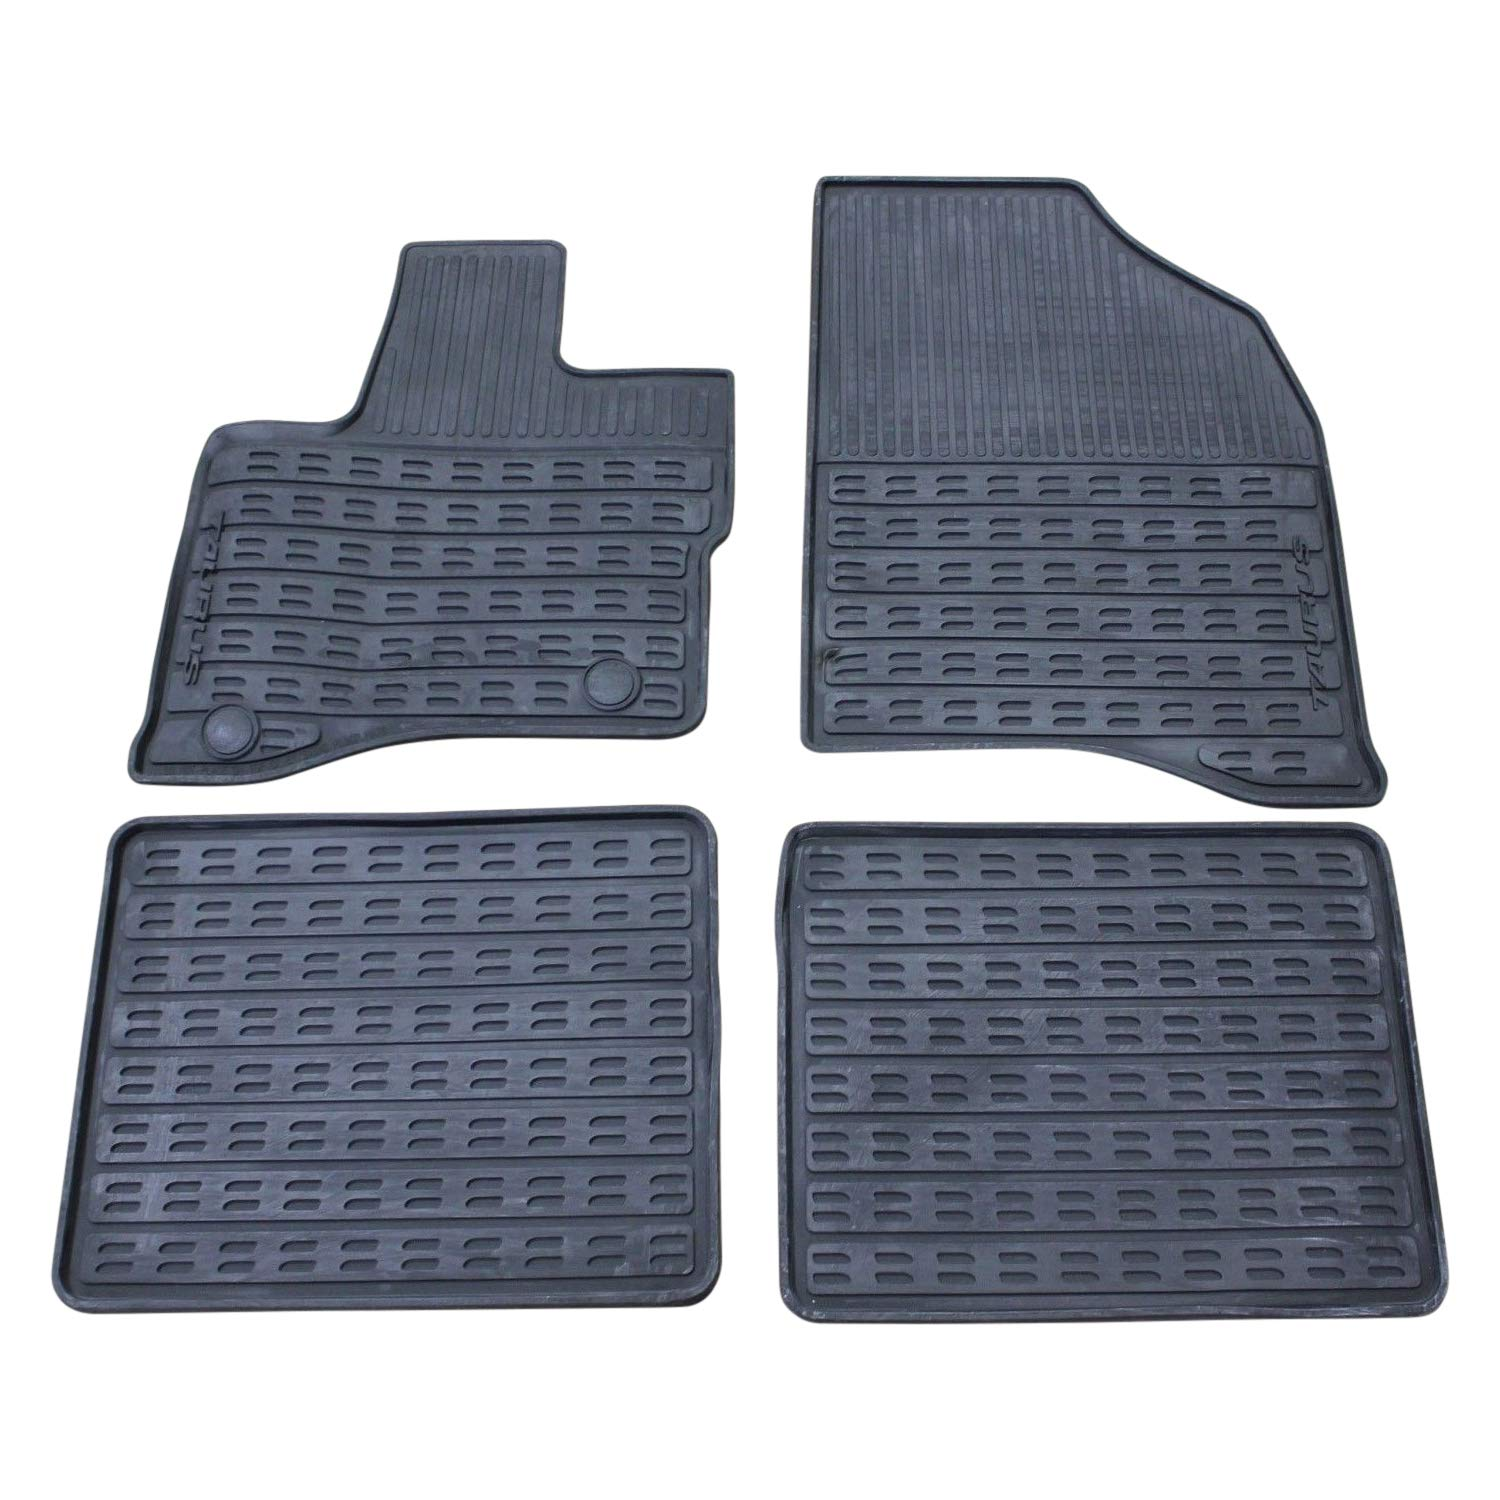 Oem Factory Stock 2011 2012 2013 2014 2015 Ford Taurus Black Ebony Rubber All Weather Floor Mats Set 4-pc Front & Rear